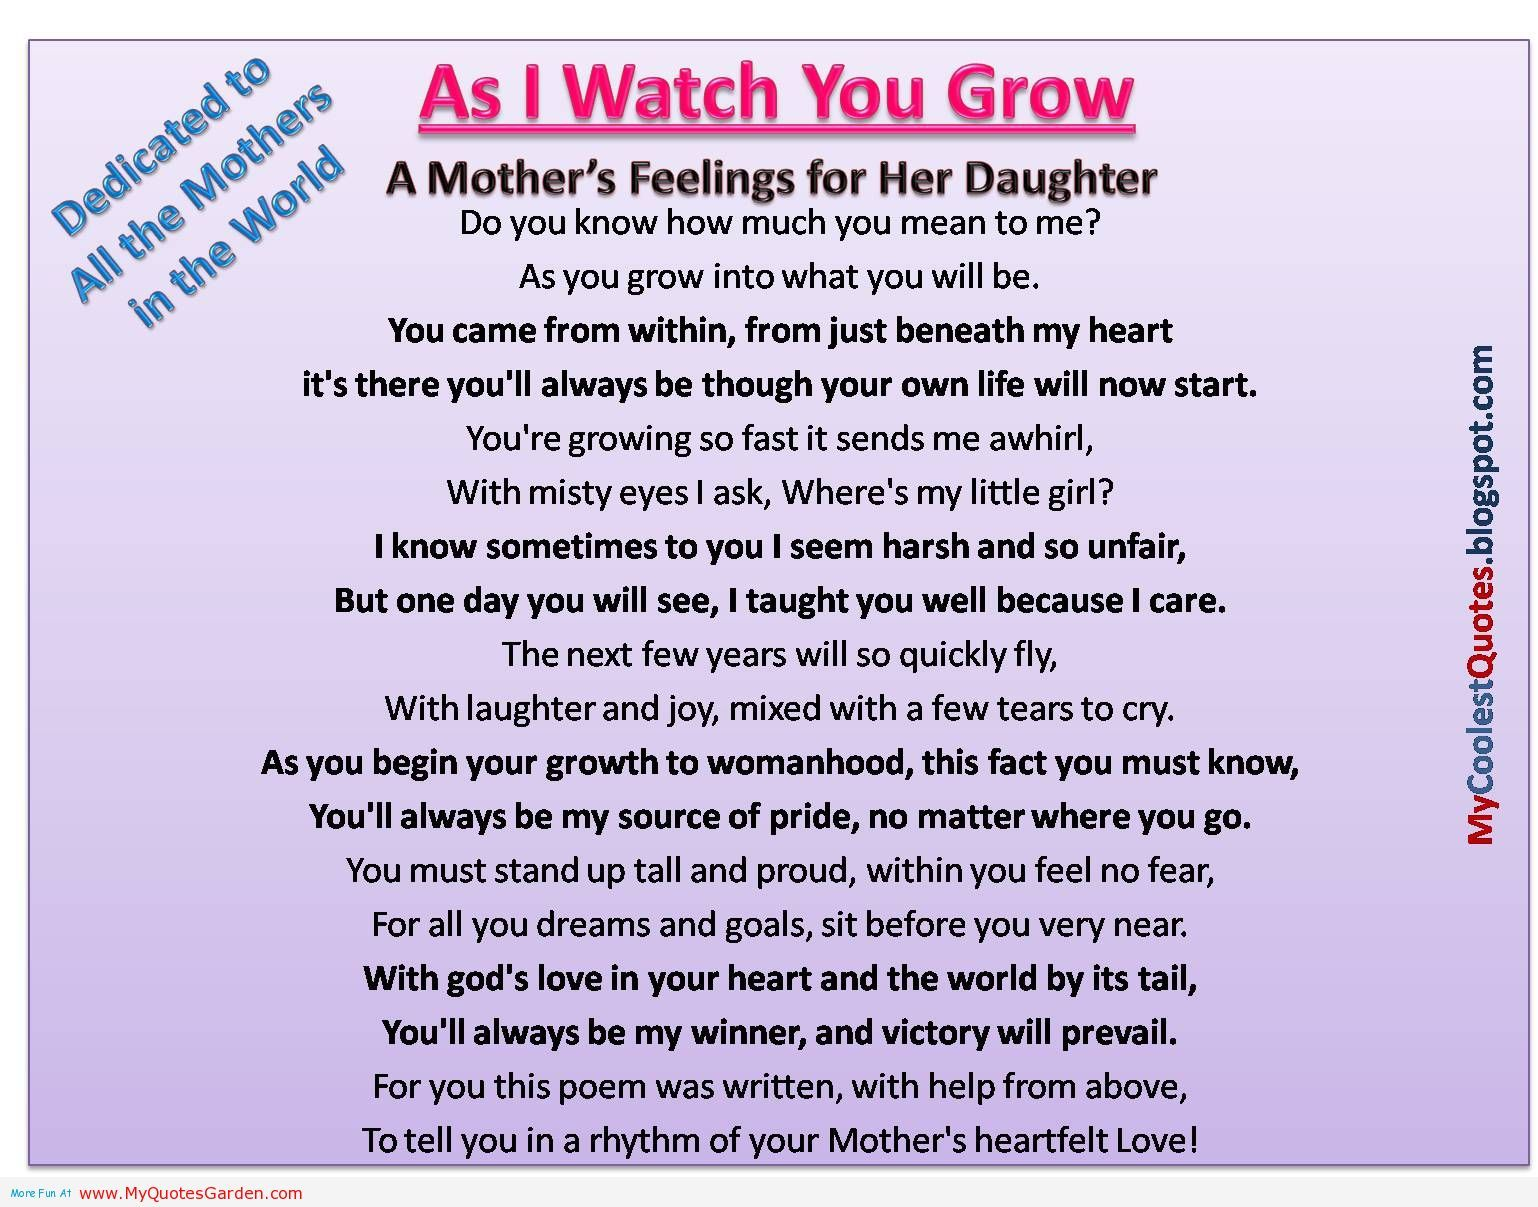 Mother Daughter Love Quotes Mother's Love For Her Daughter When She Was Growing Up  Mother